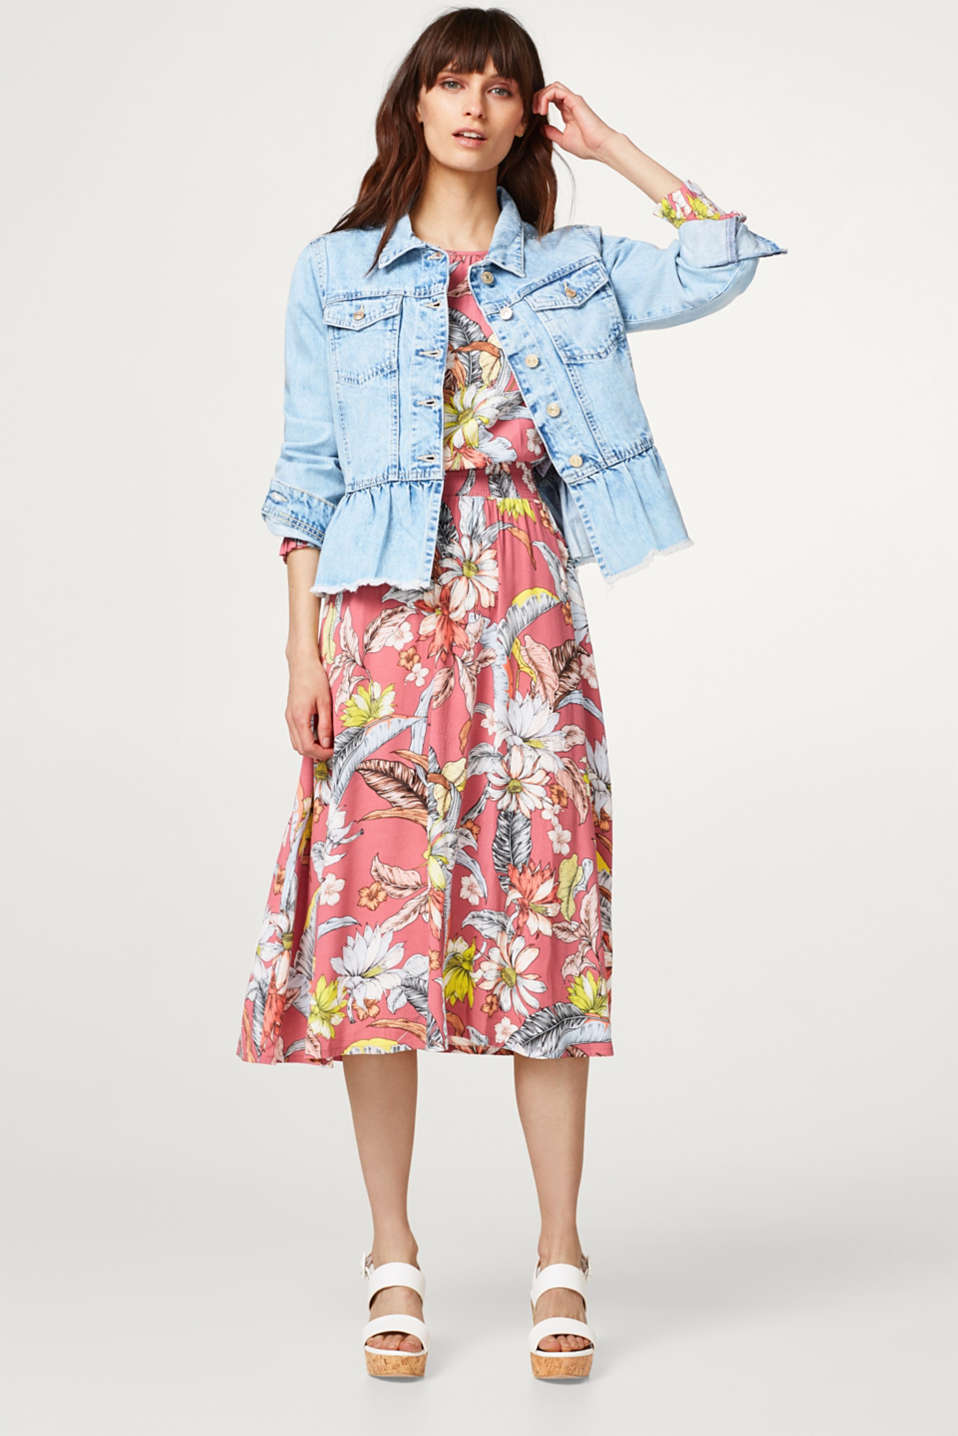 Denim jacket with a frilled hem